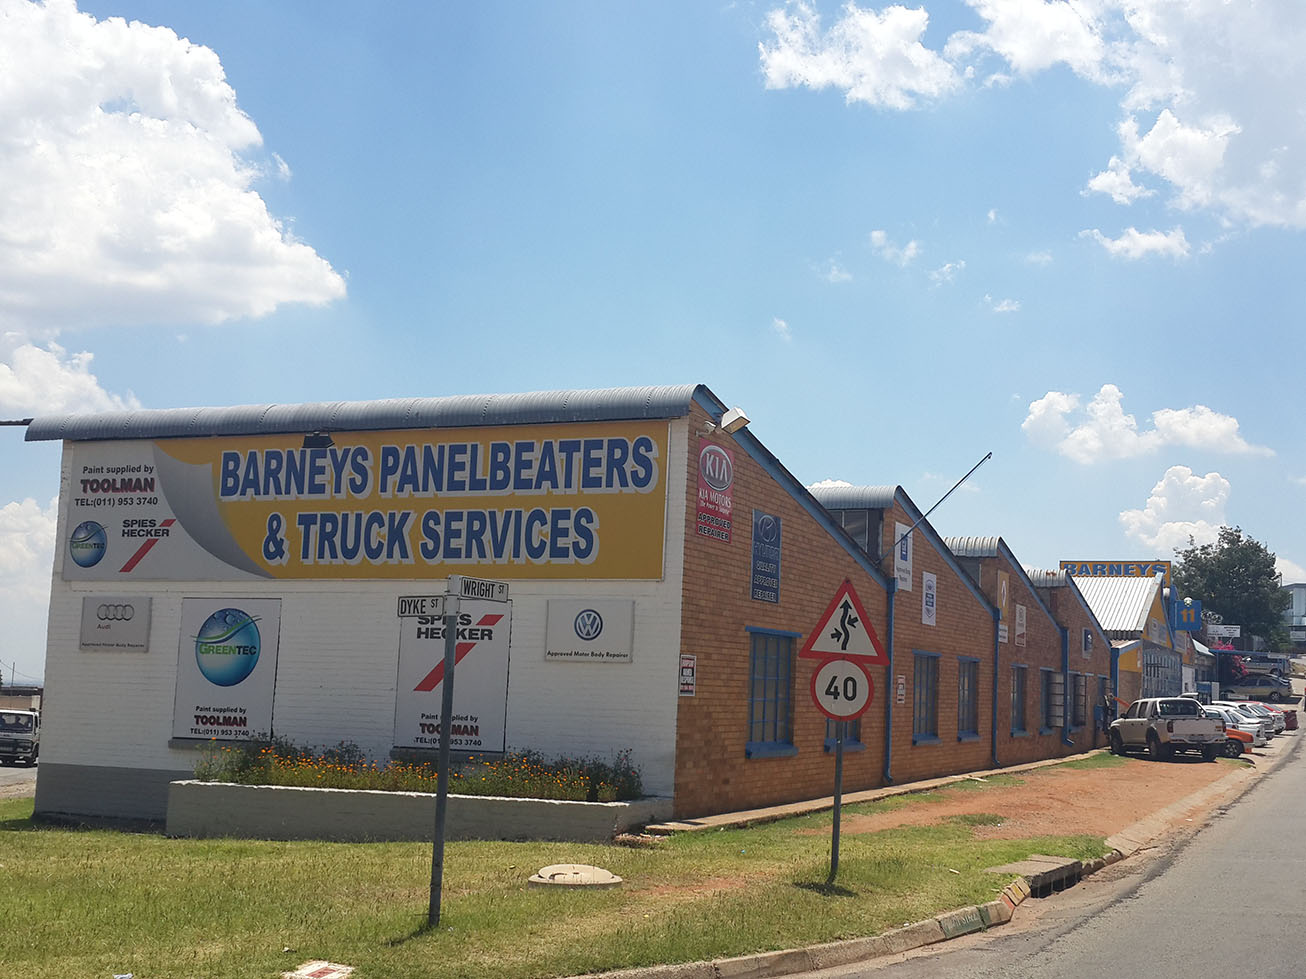 Barney's Panelbeaters and Truck Services